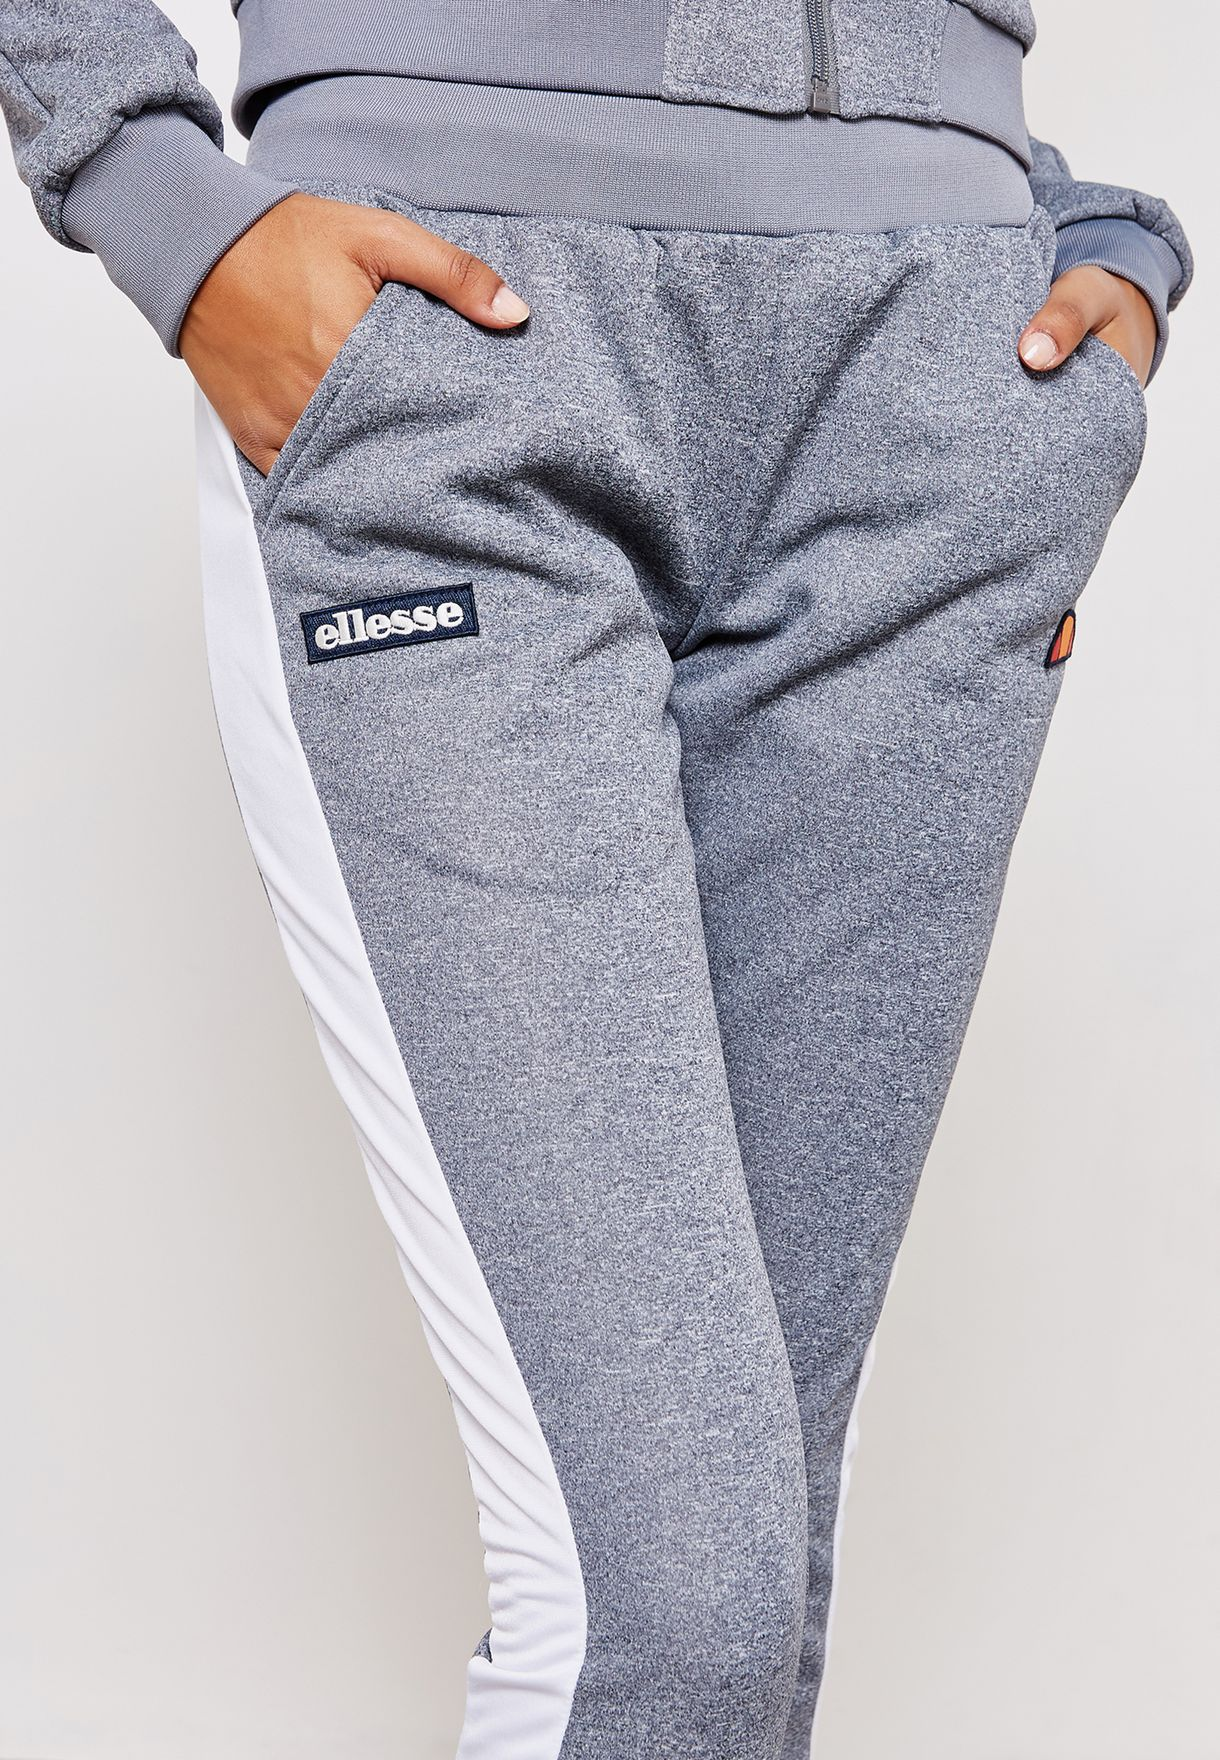 Nervetti Sweatpants